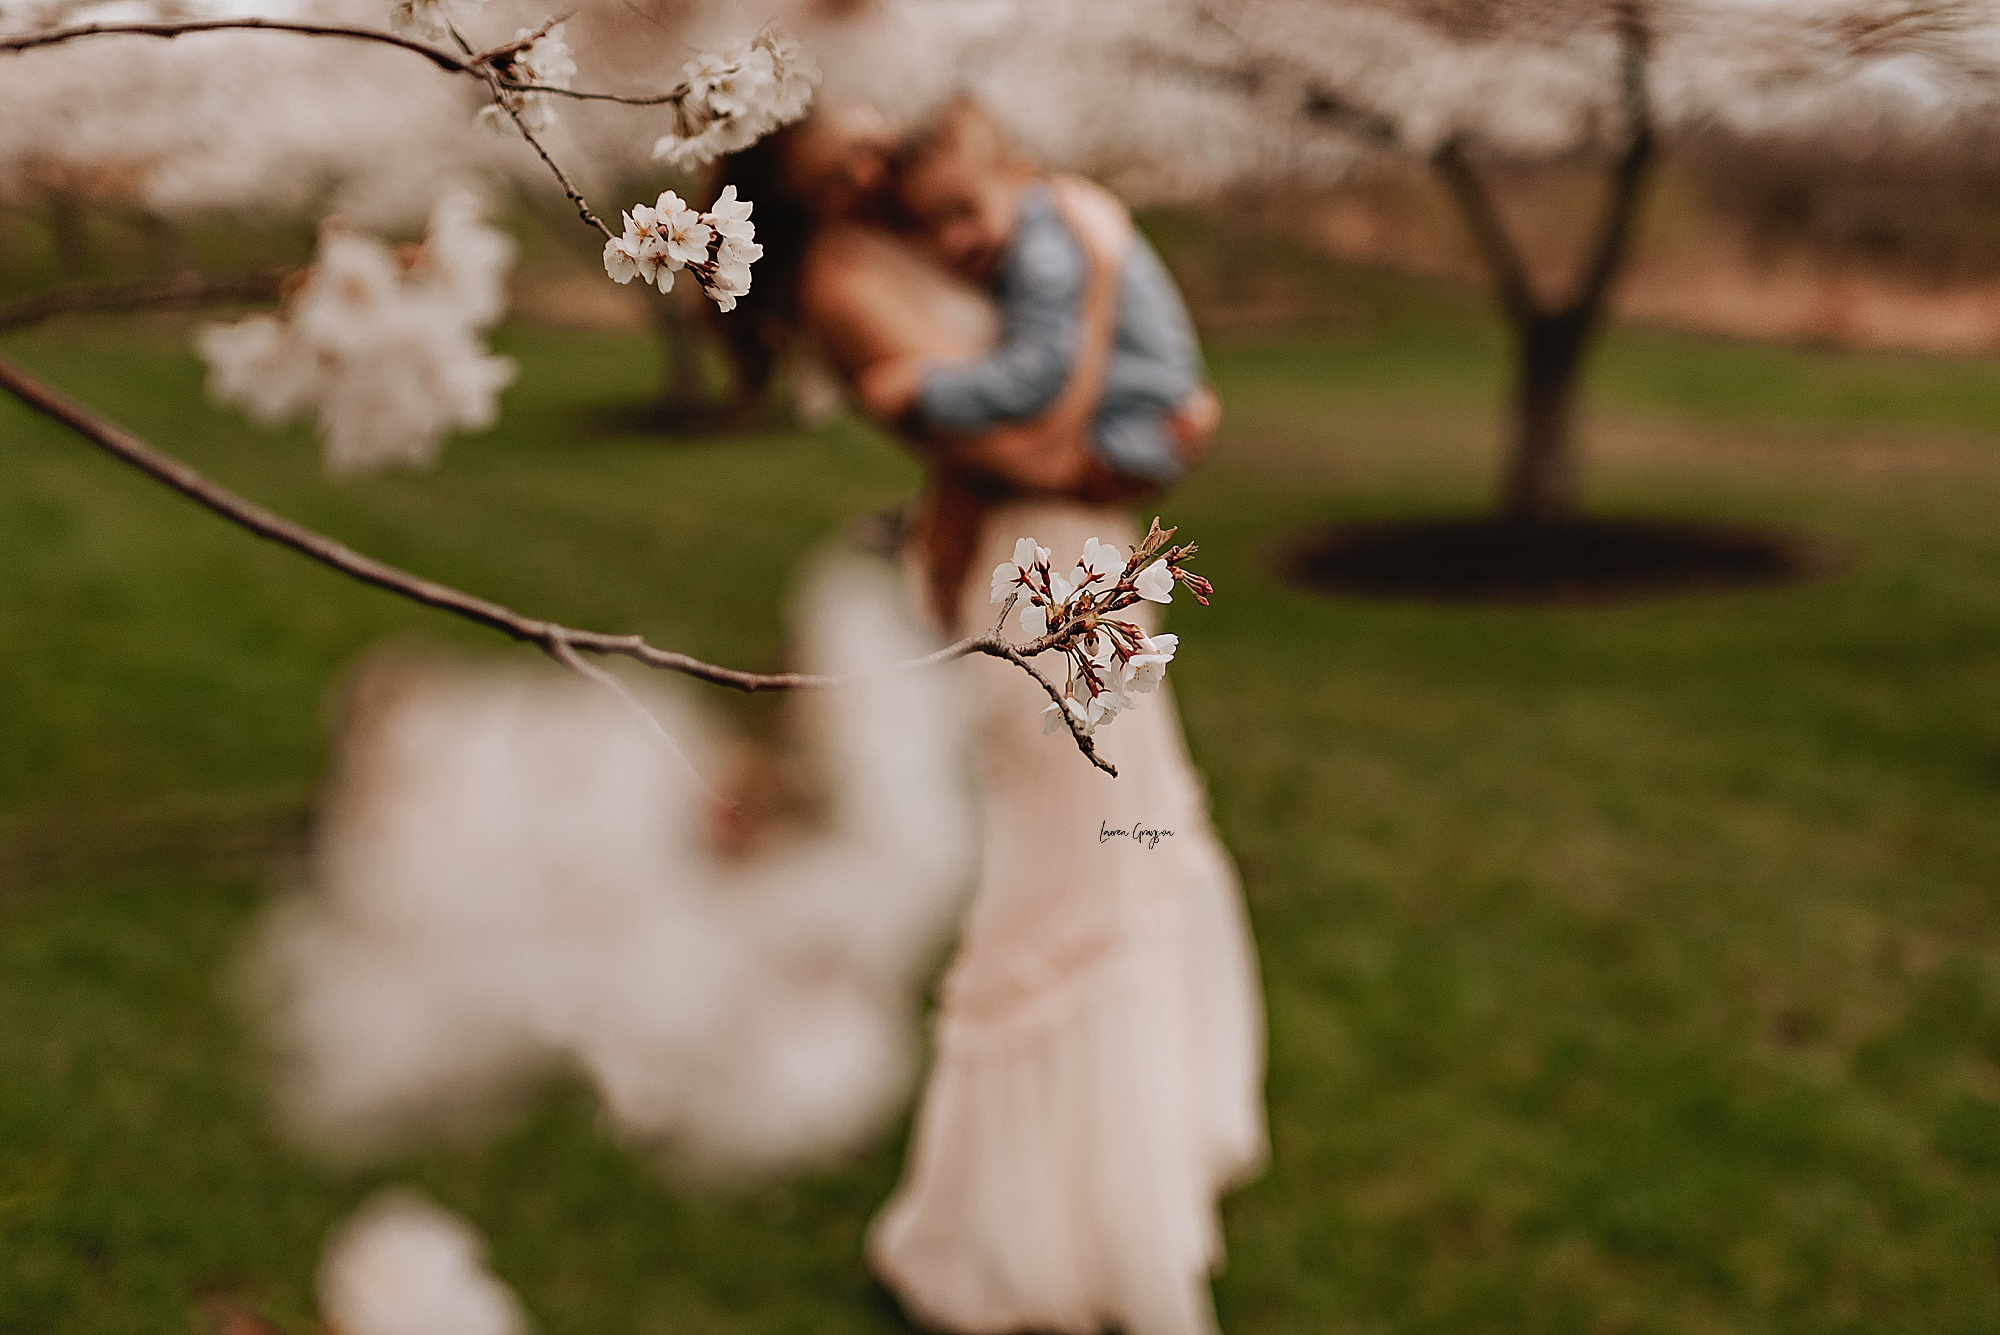 lauren-grayson-photography-cleveland-ohio-motherhood-family-child-photo-session-cherry-blossoms_0003.jpg